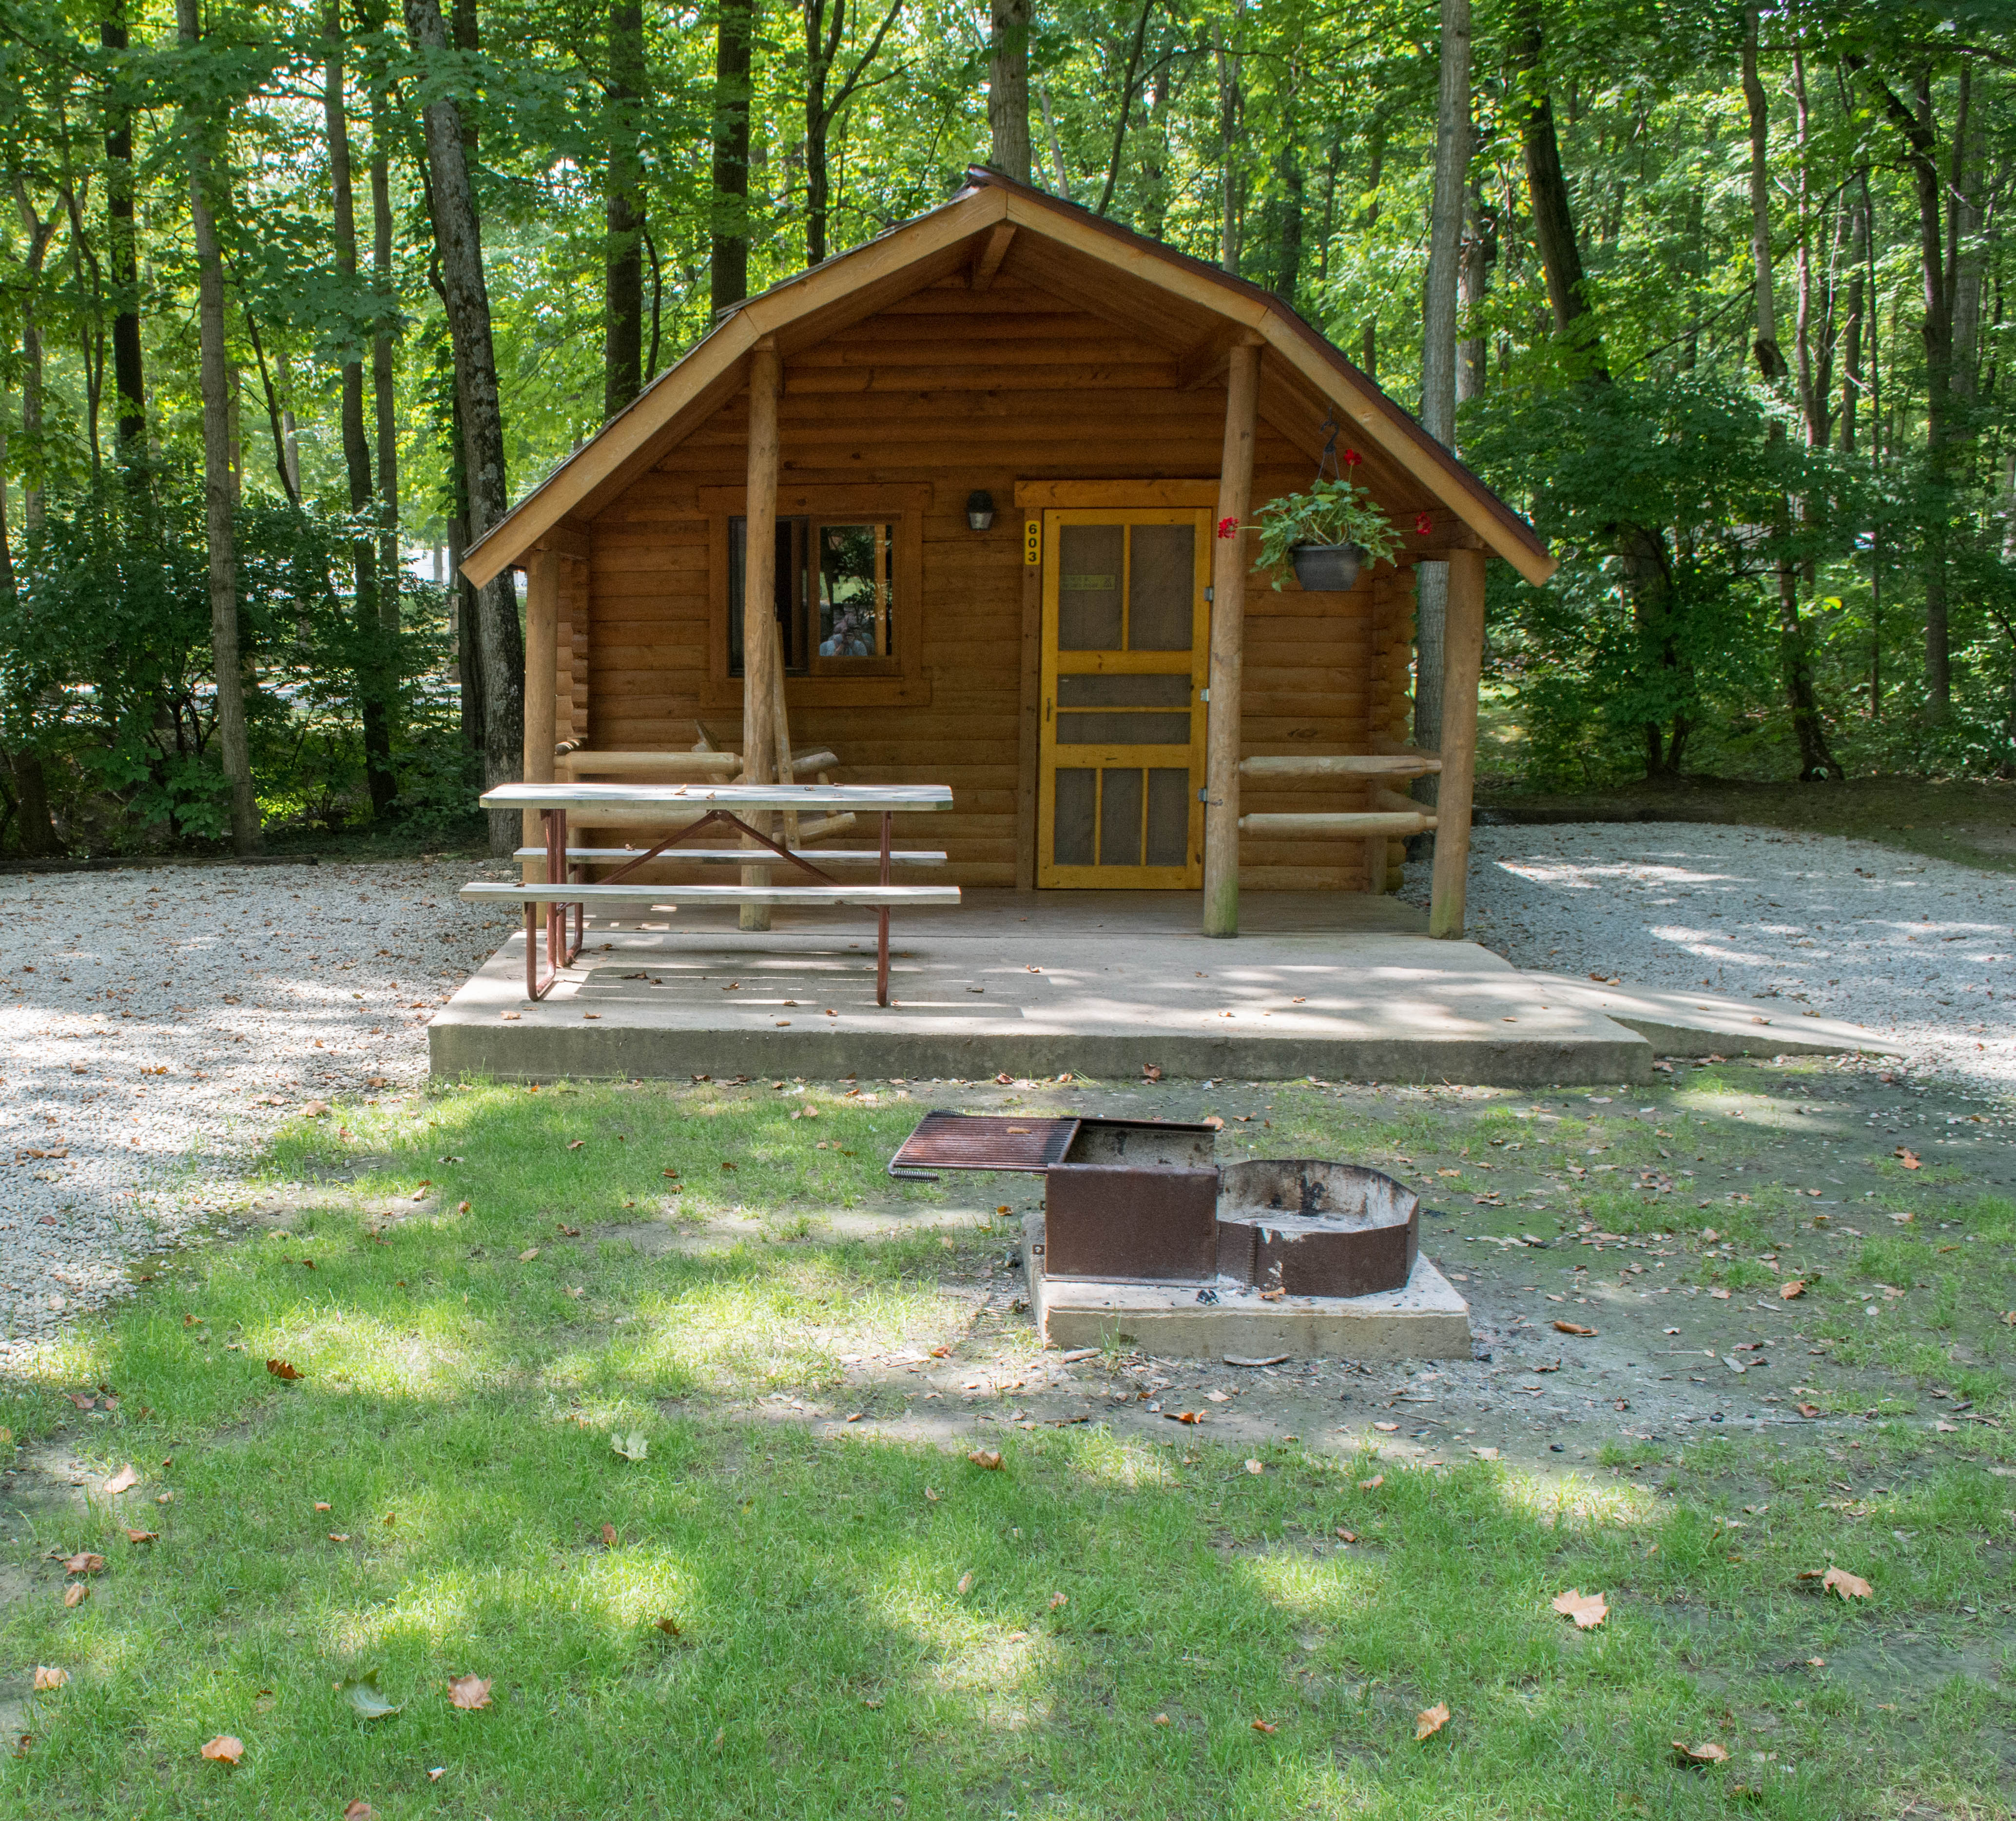 own ohio builds her sylvan lake mom cabin cabins weekend journal adventure on in single a